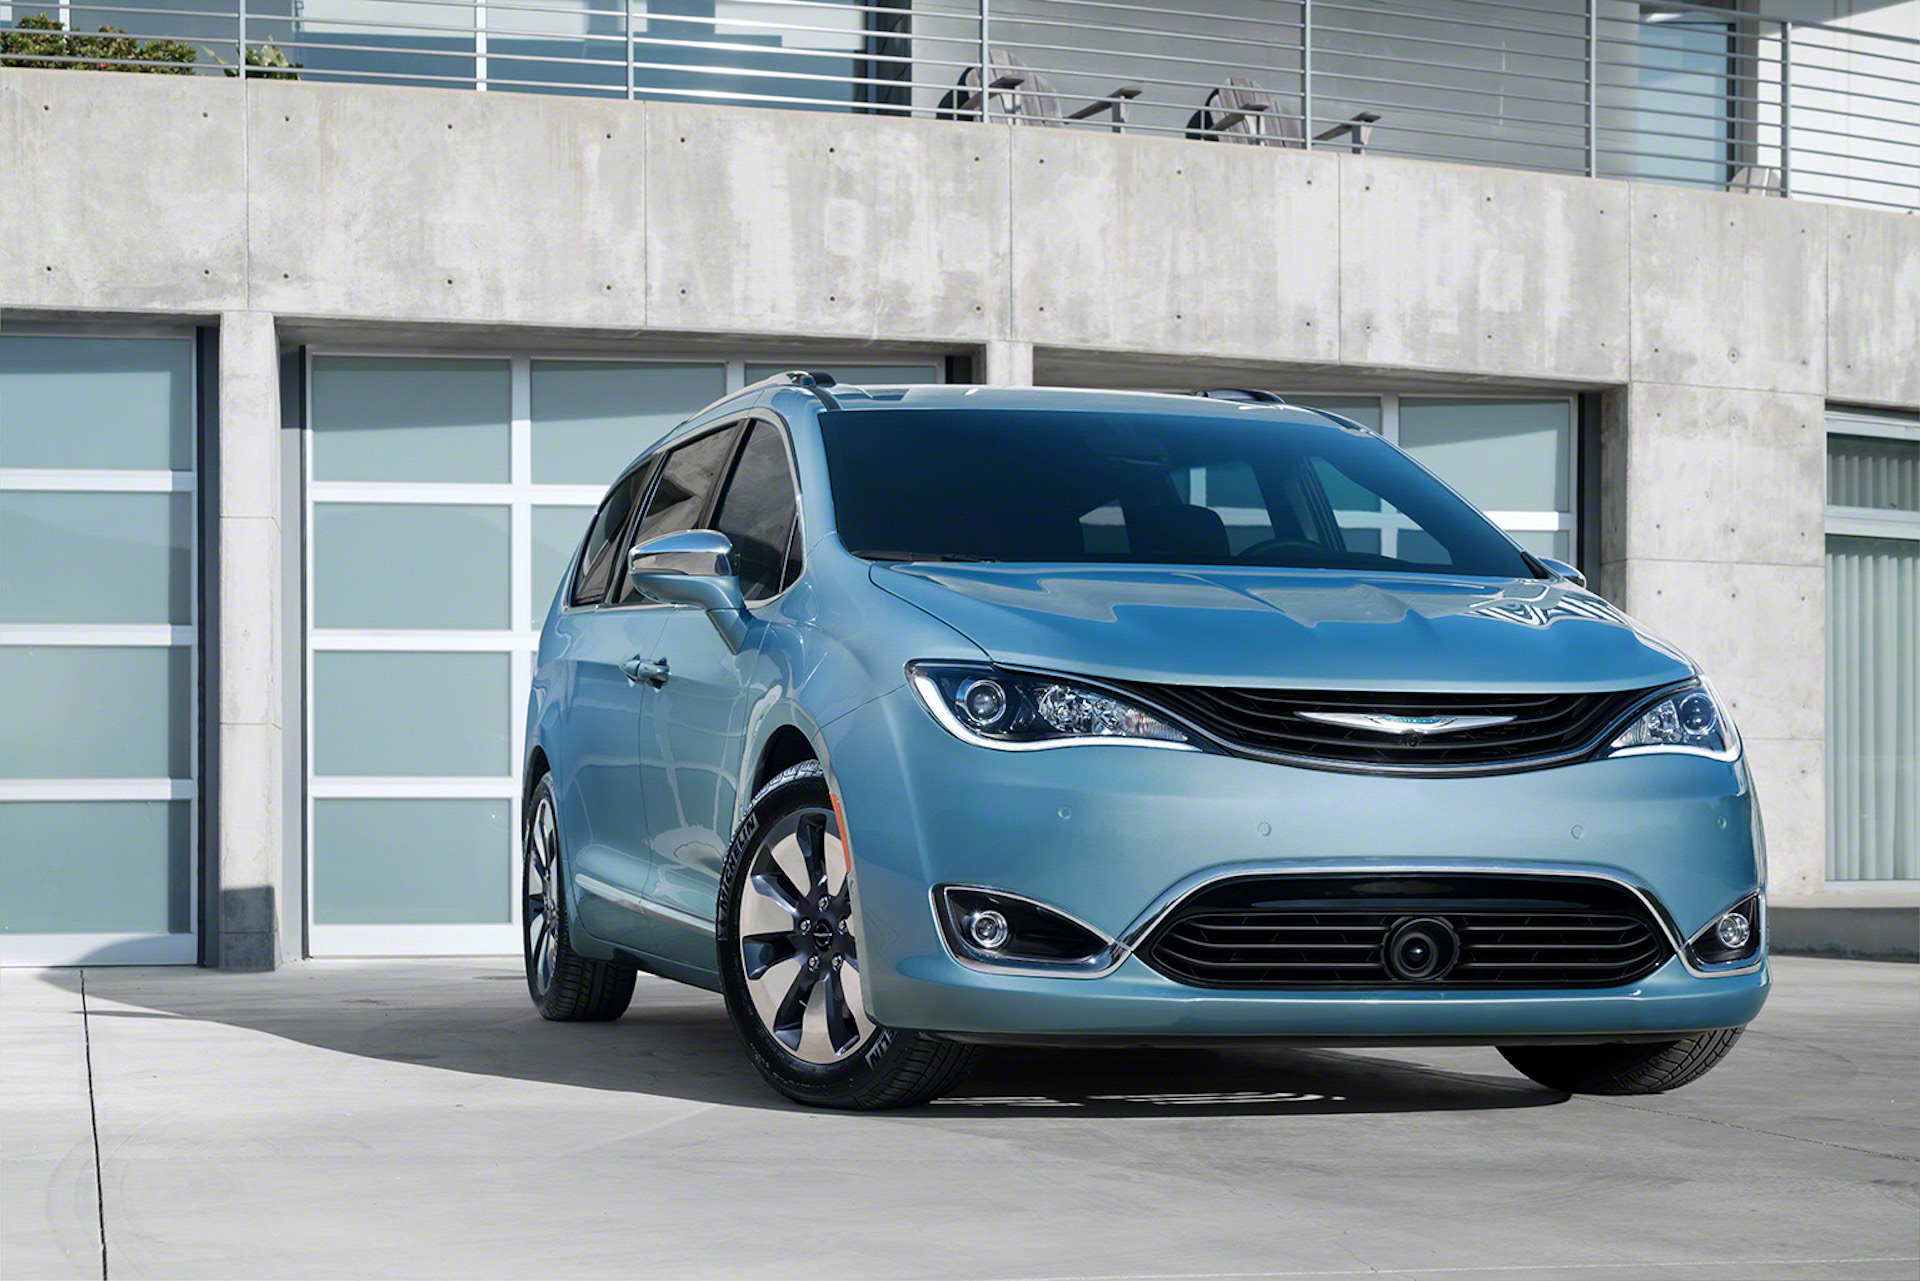 2017 Chrysler Pacifica Hybrid Plug In Minivan Offers 30 Miles Of Electric Range